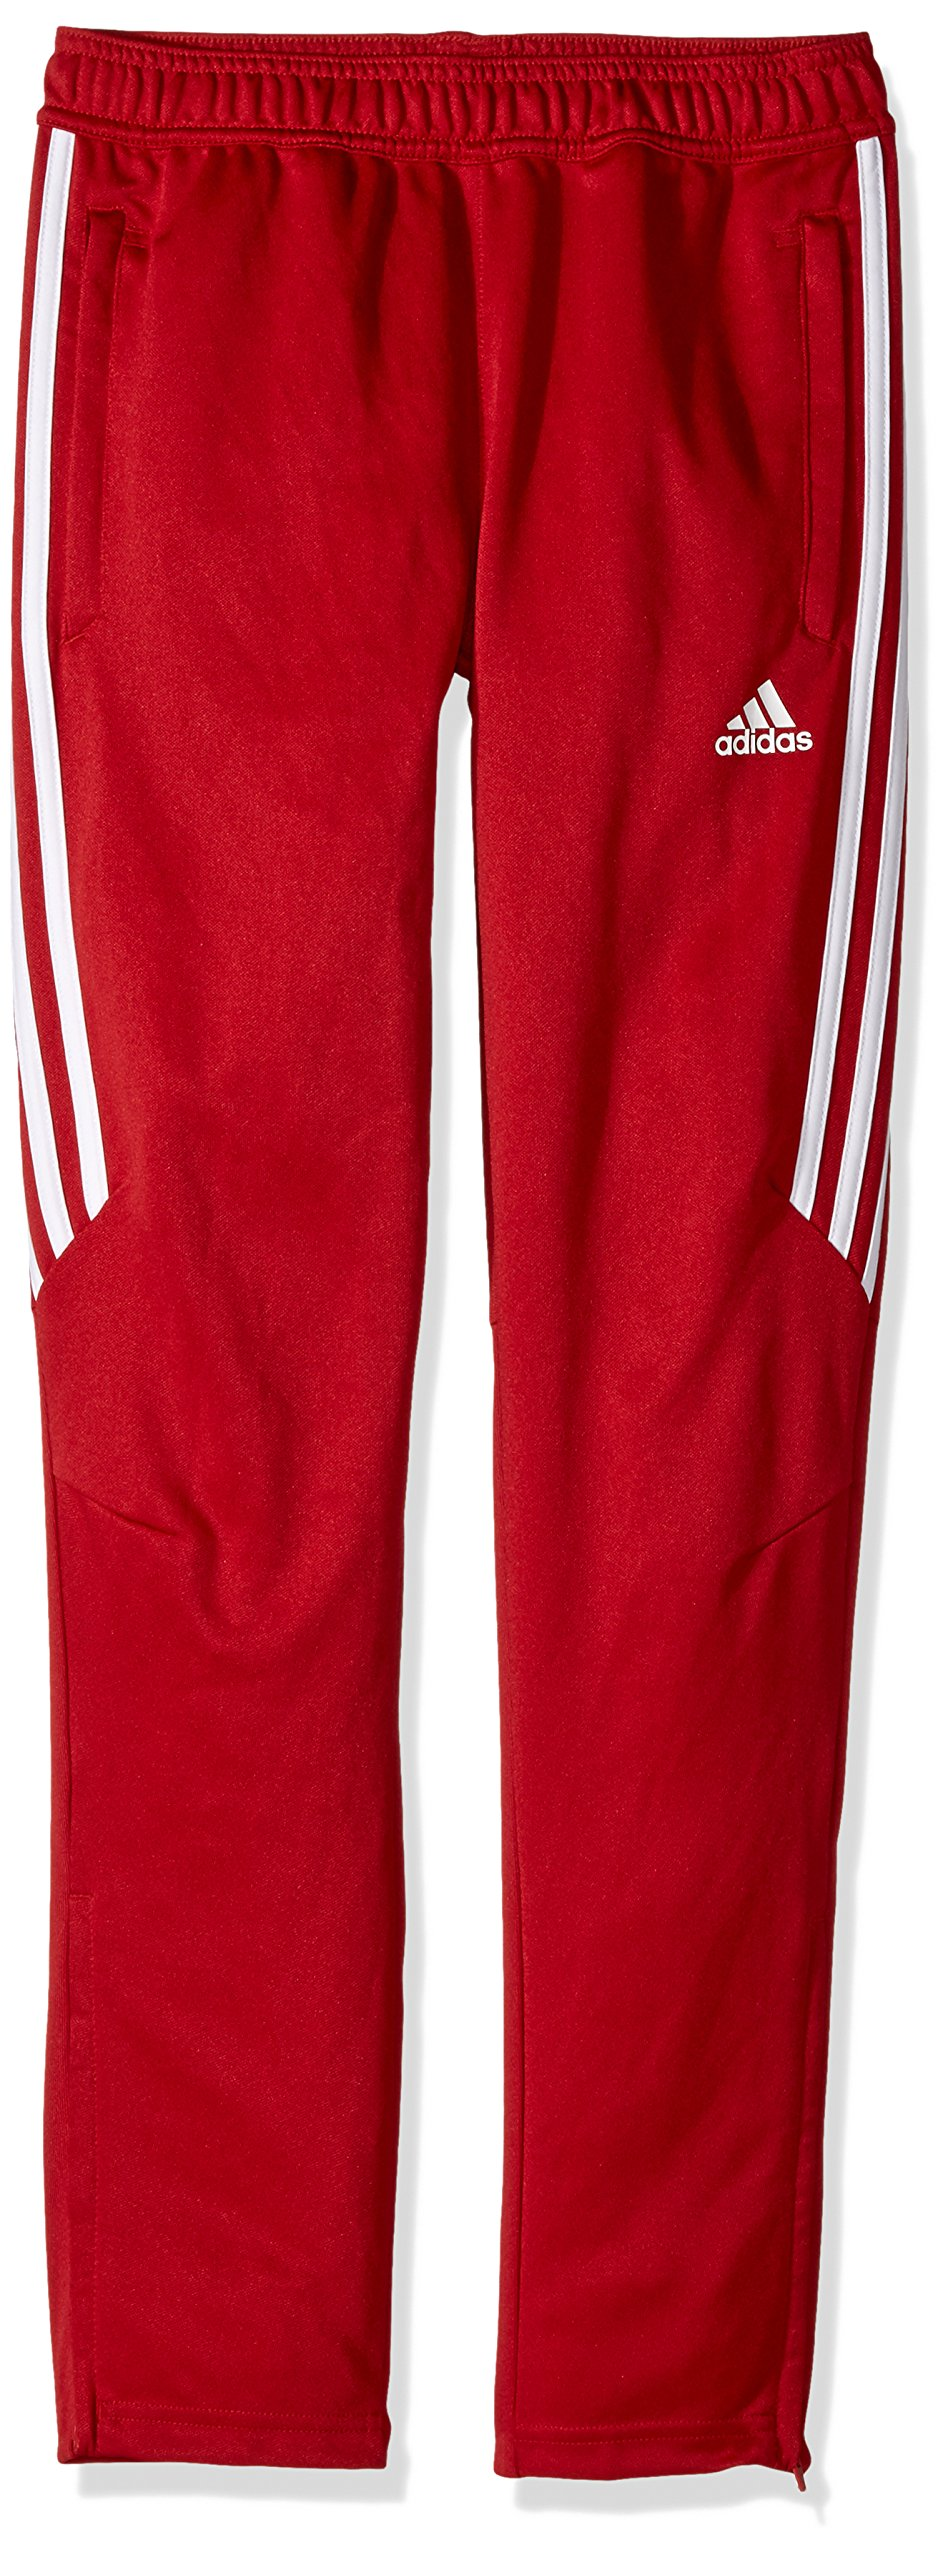 adidas Youth Soccer Tiro 17 Pants, XX-Small - Power Red/White